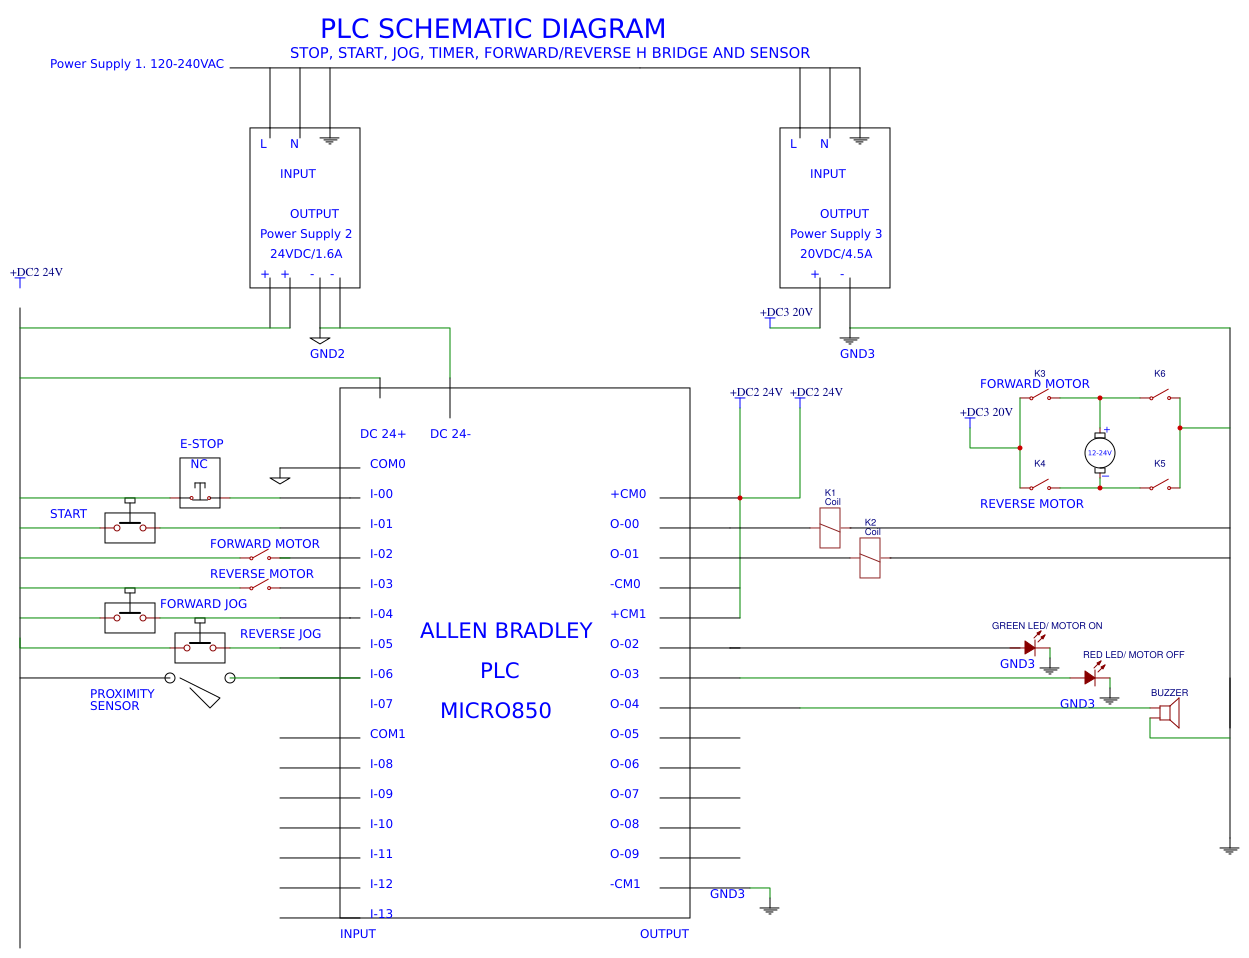 control wiring diagram of plc ladder logic - easyeda